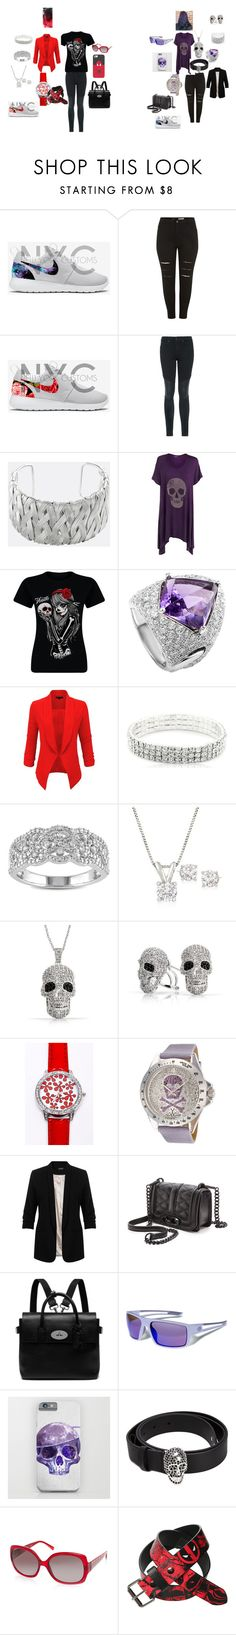 """MOVIE NIGHT WITH GODDAUGHTER"" by amarra-jade on Polyvore featuring Joe's Jeans, Avenue, WearAll, Chimento, LE3NO, Miadora, Ross-Simons, Bling Jewelry, Toy Watch and Miss Selfridge"